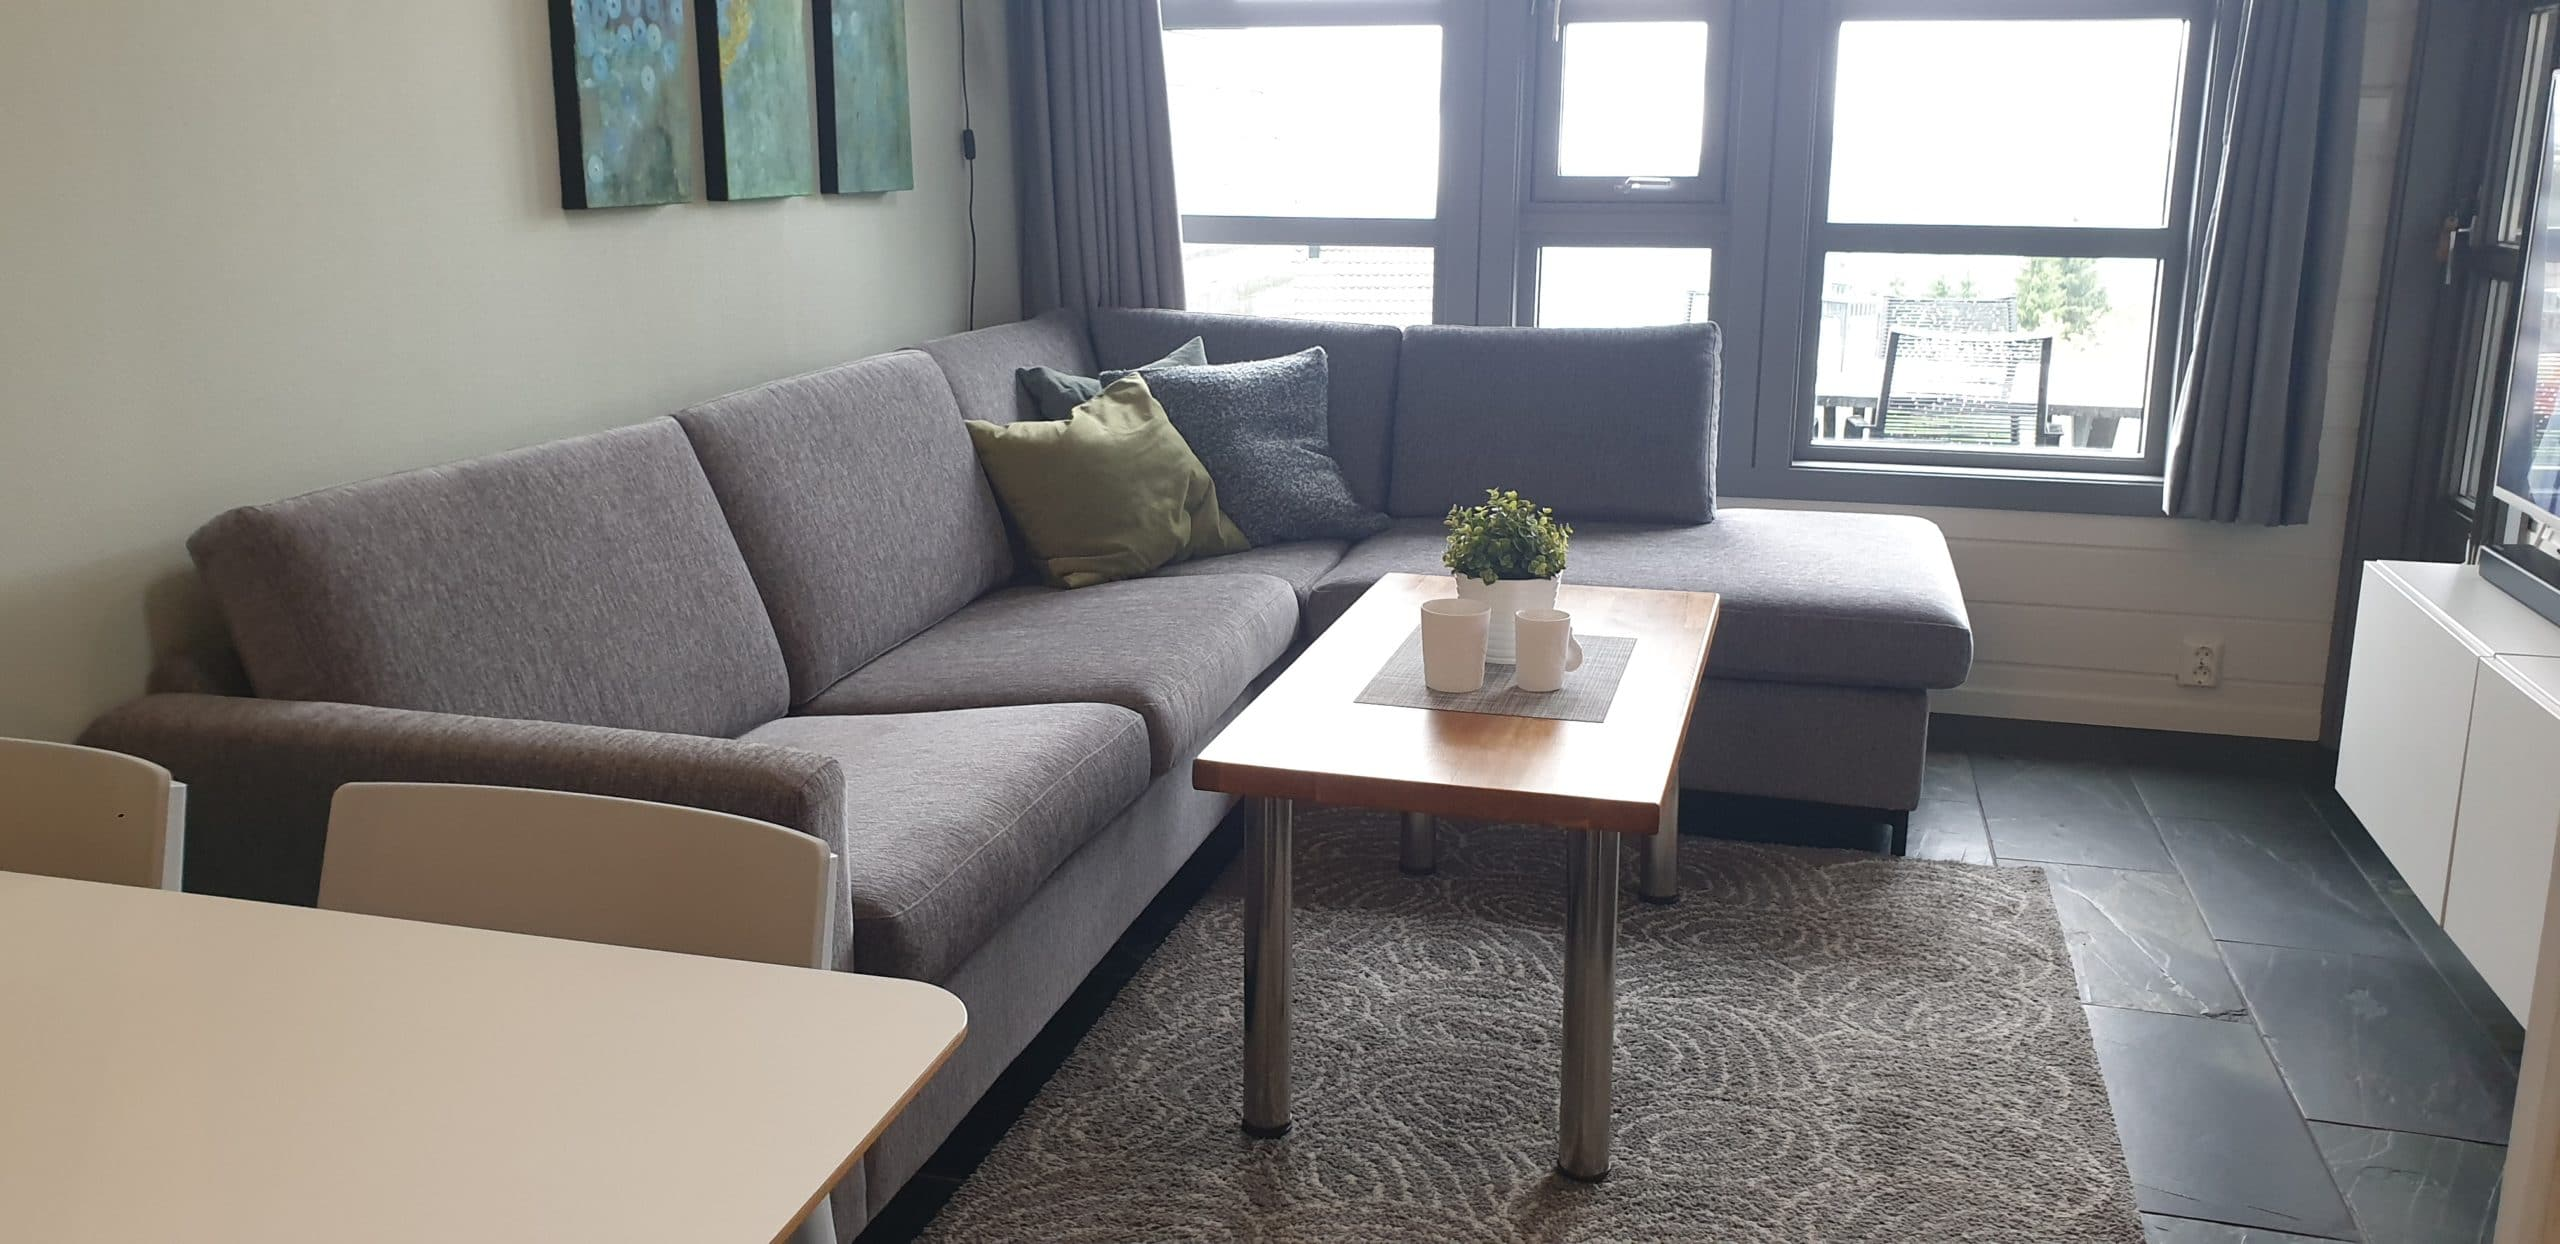 Living room seating area & view